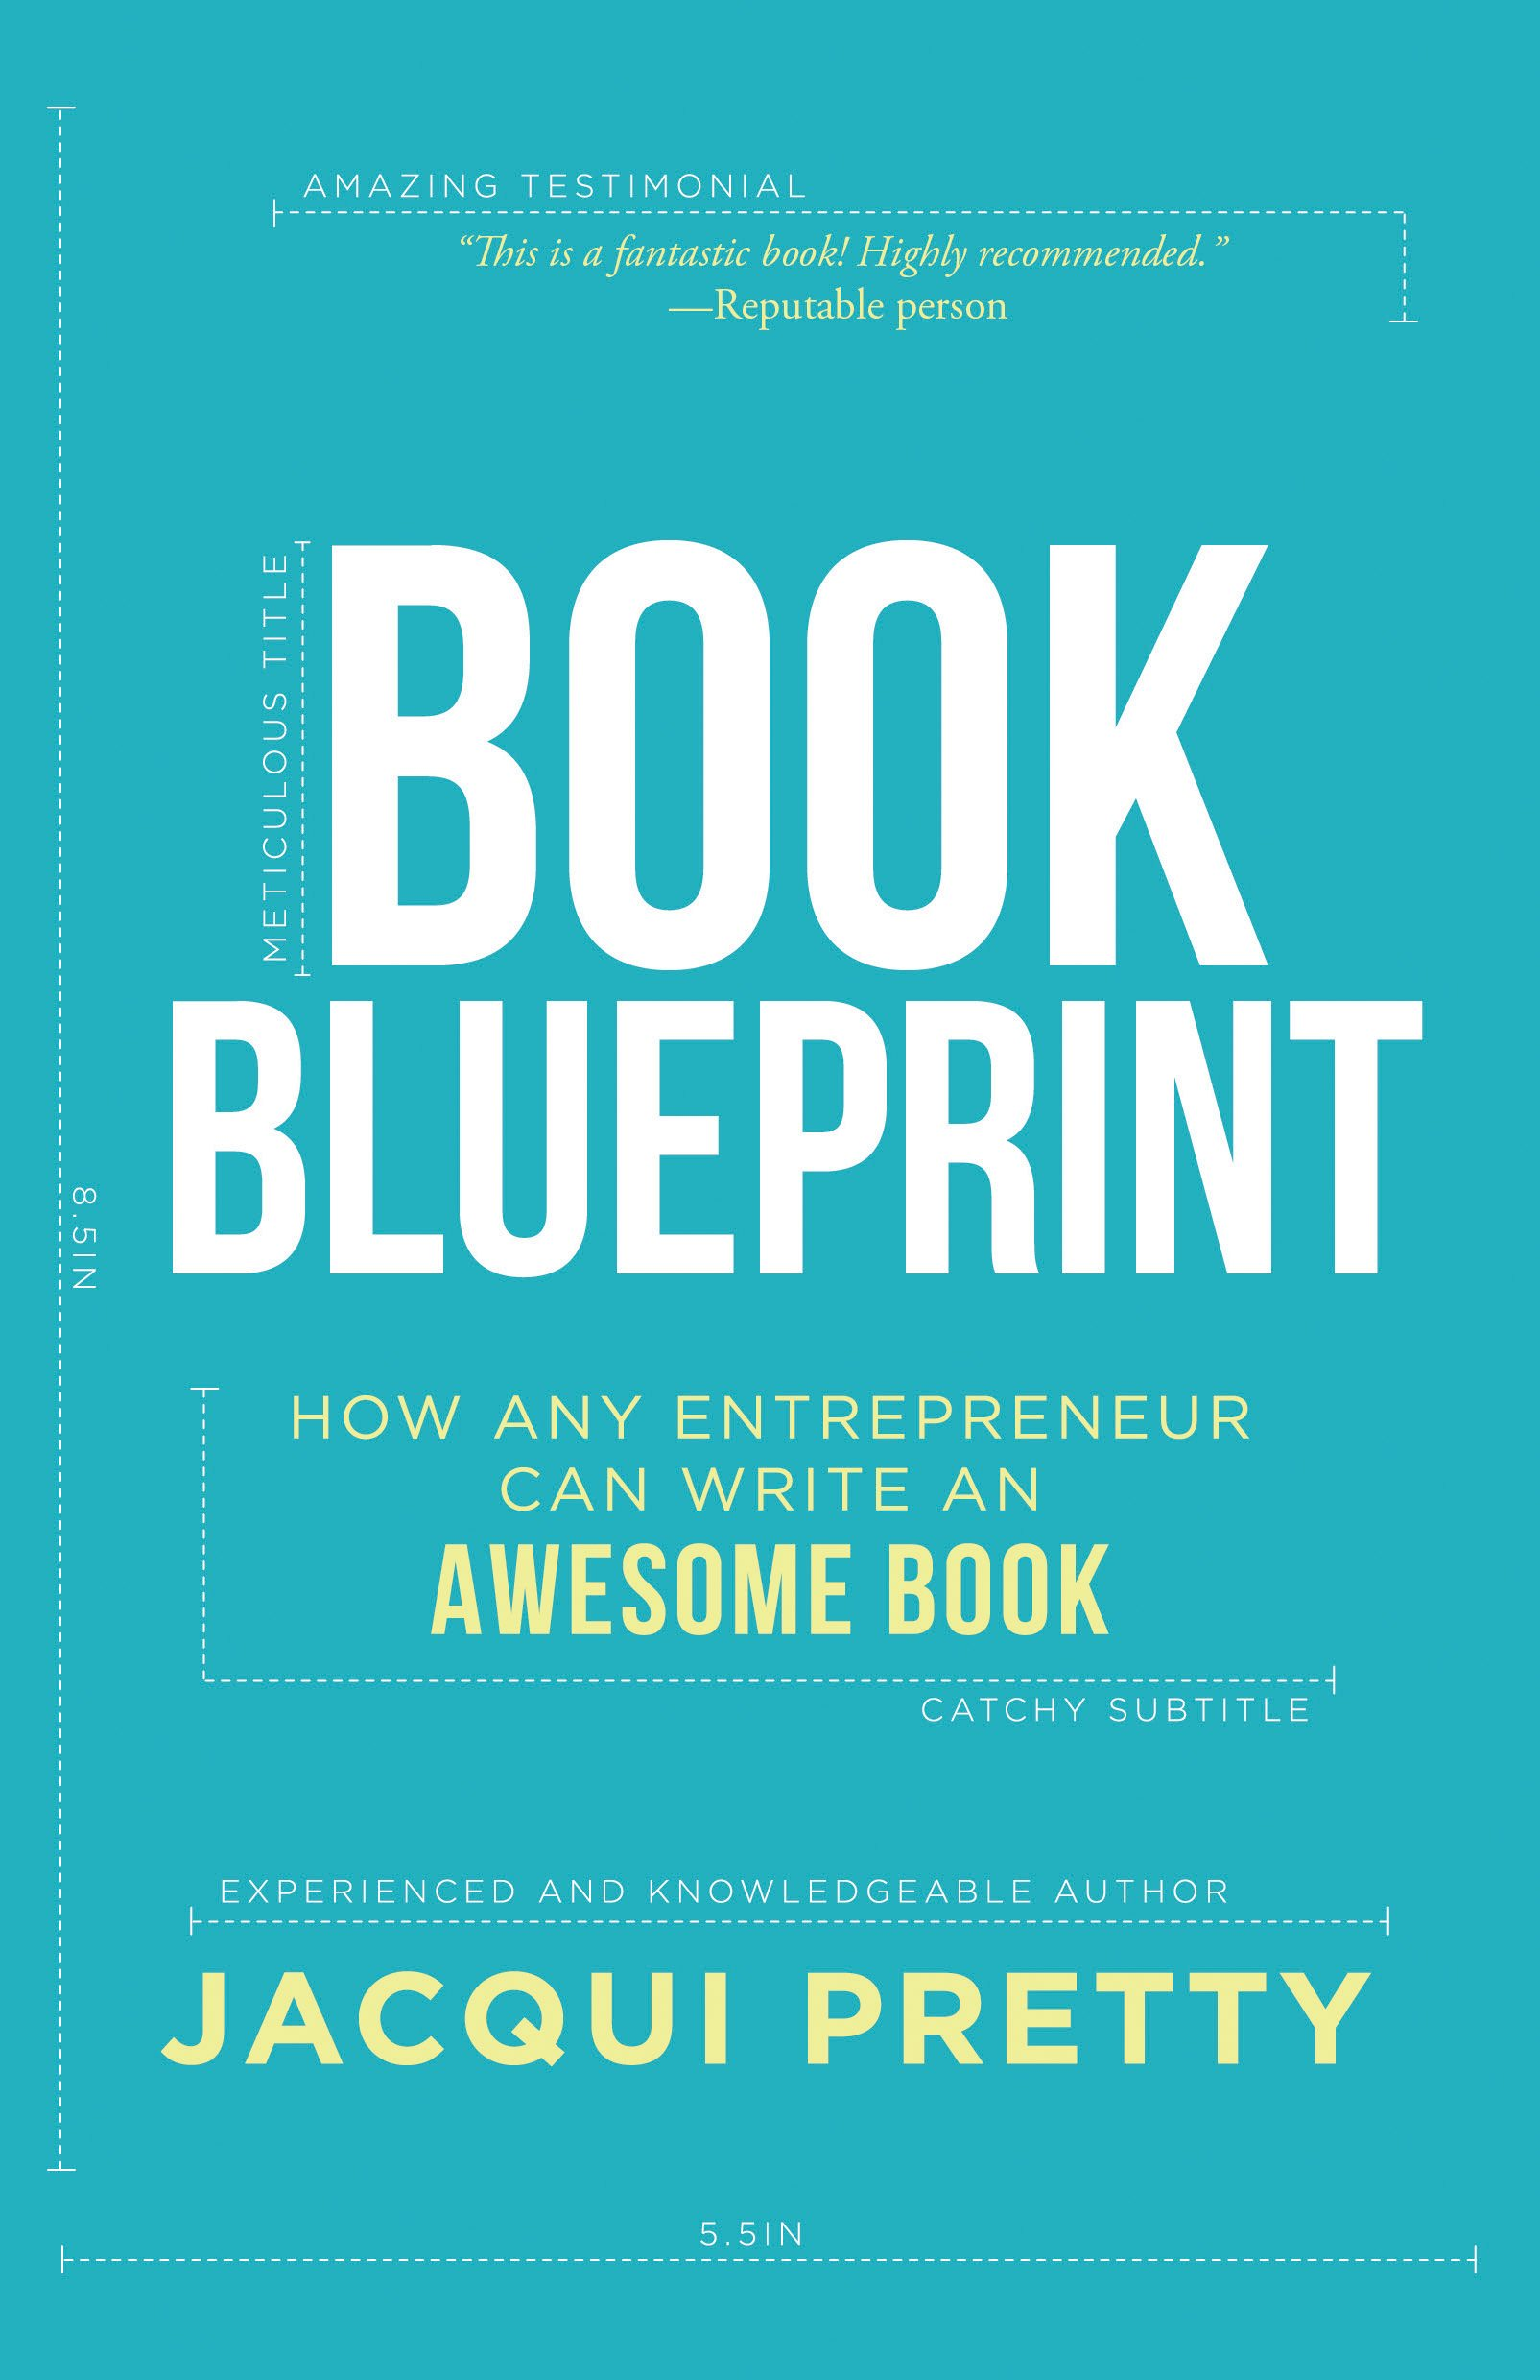 Book Blueprint: How Any Entrepreneur Can Write an Awesome Book